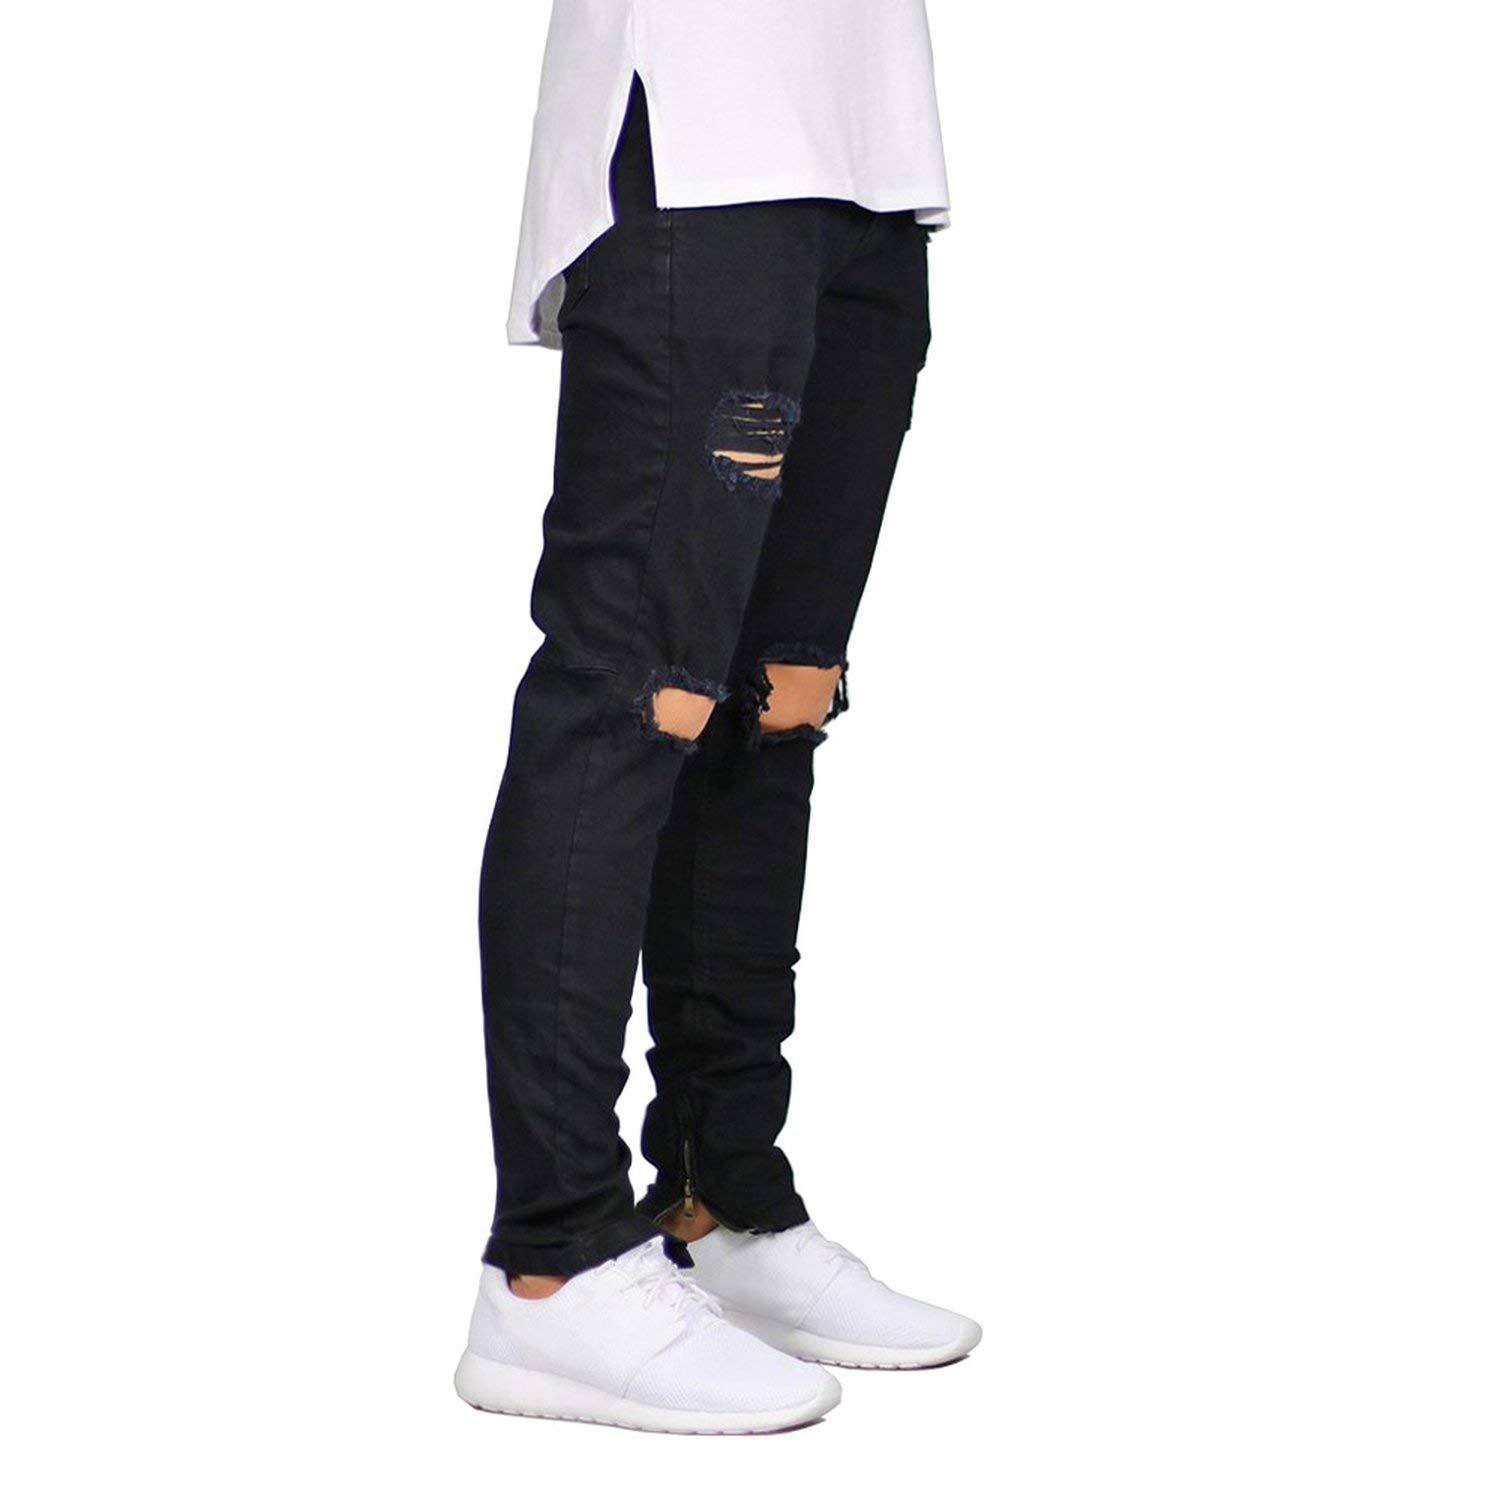 Memoriesed Men Jeans Stretch Destroyed Ripped Design Fashion Ankle Zipper Skinny Jeans for Men